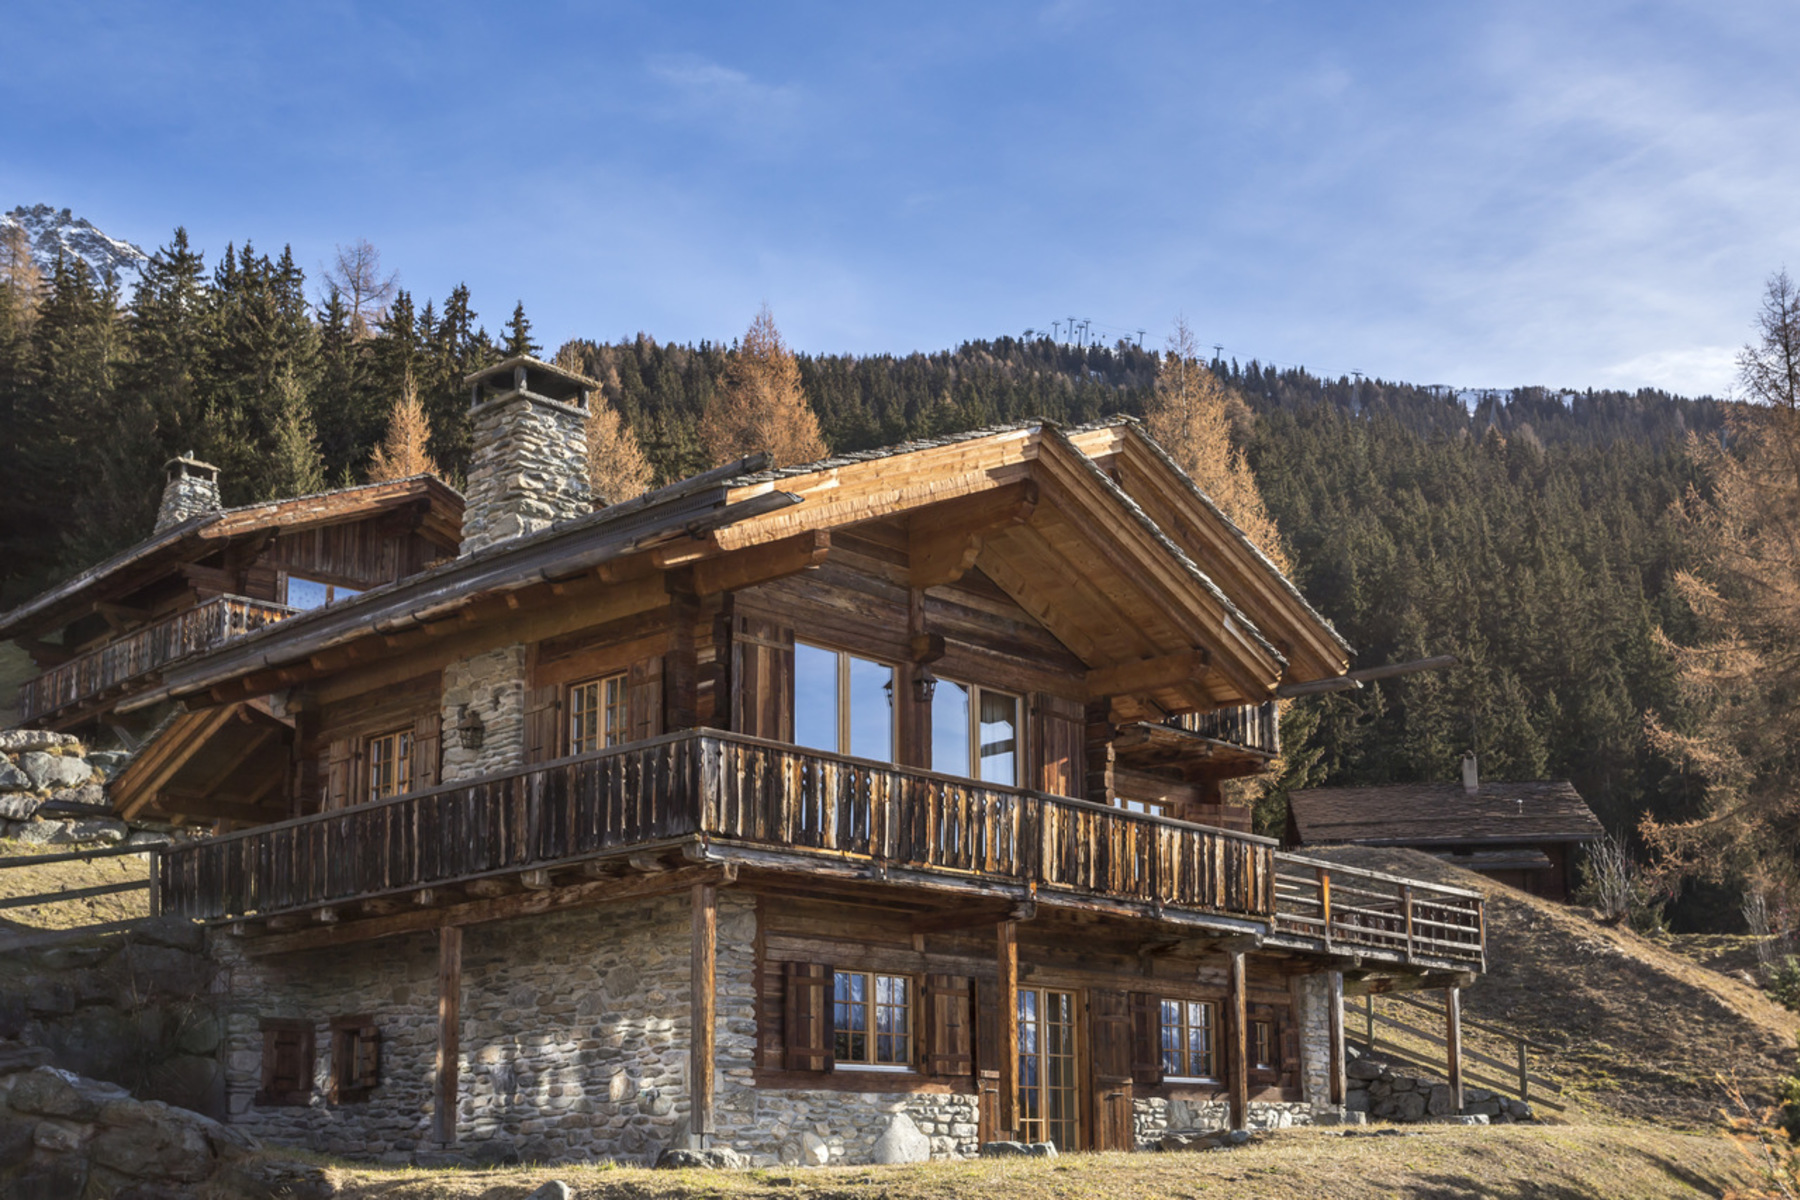 Single Family Home for Sale at Chalet BONNE VIE Verbier, 1936 Switzerland